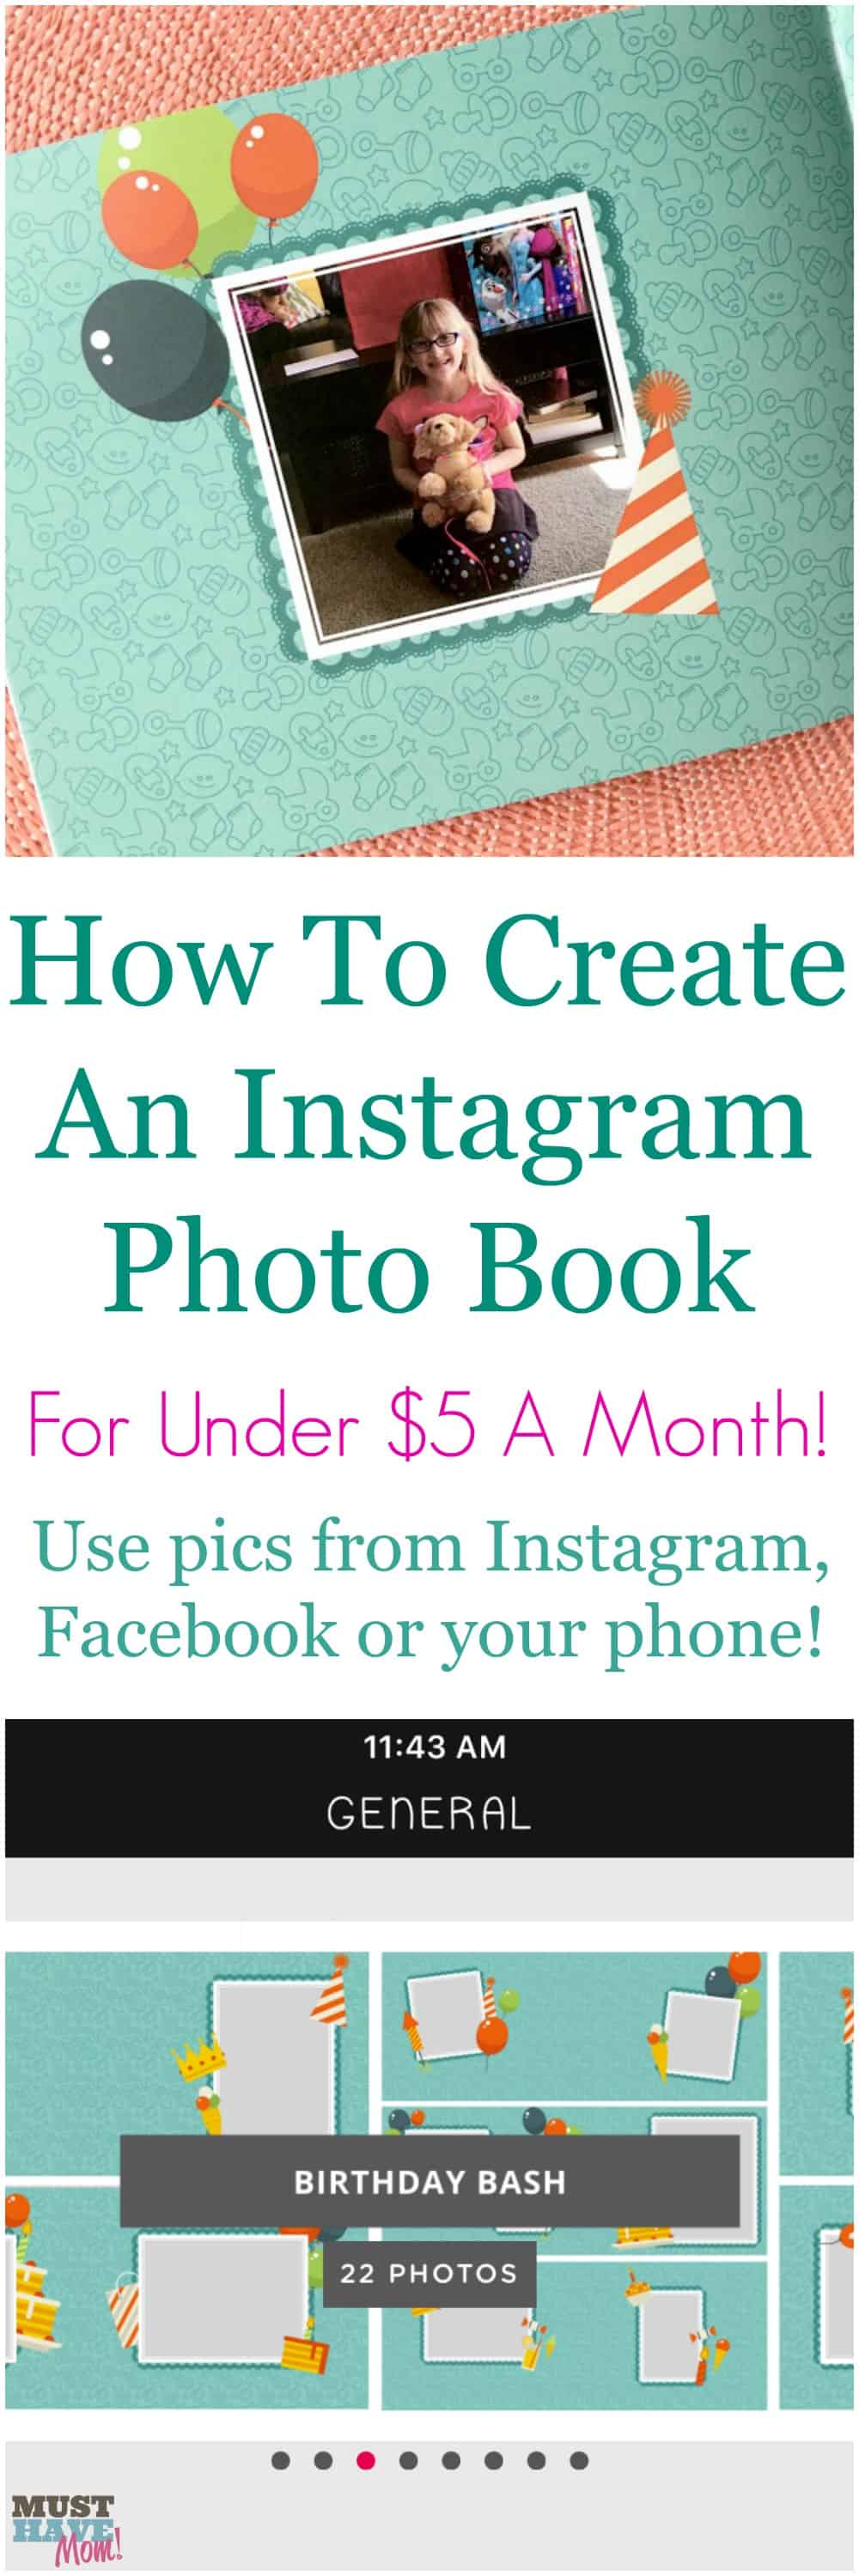 How to create an Instagram book for under $5 a month! Create a photo book using pictures from your phone, Facebook, or Instagram. It's quick and easy and the best way to preserve your memories.